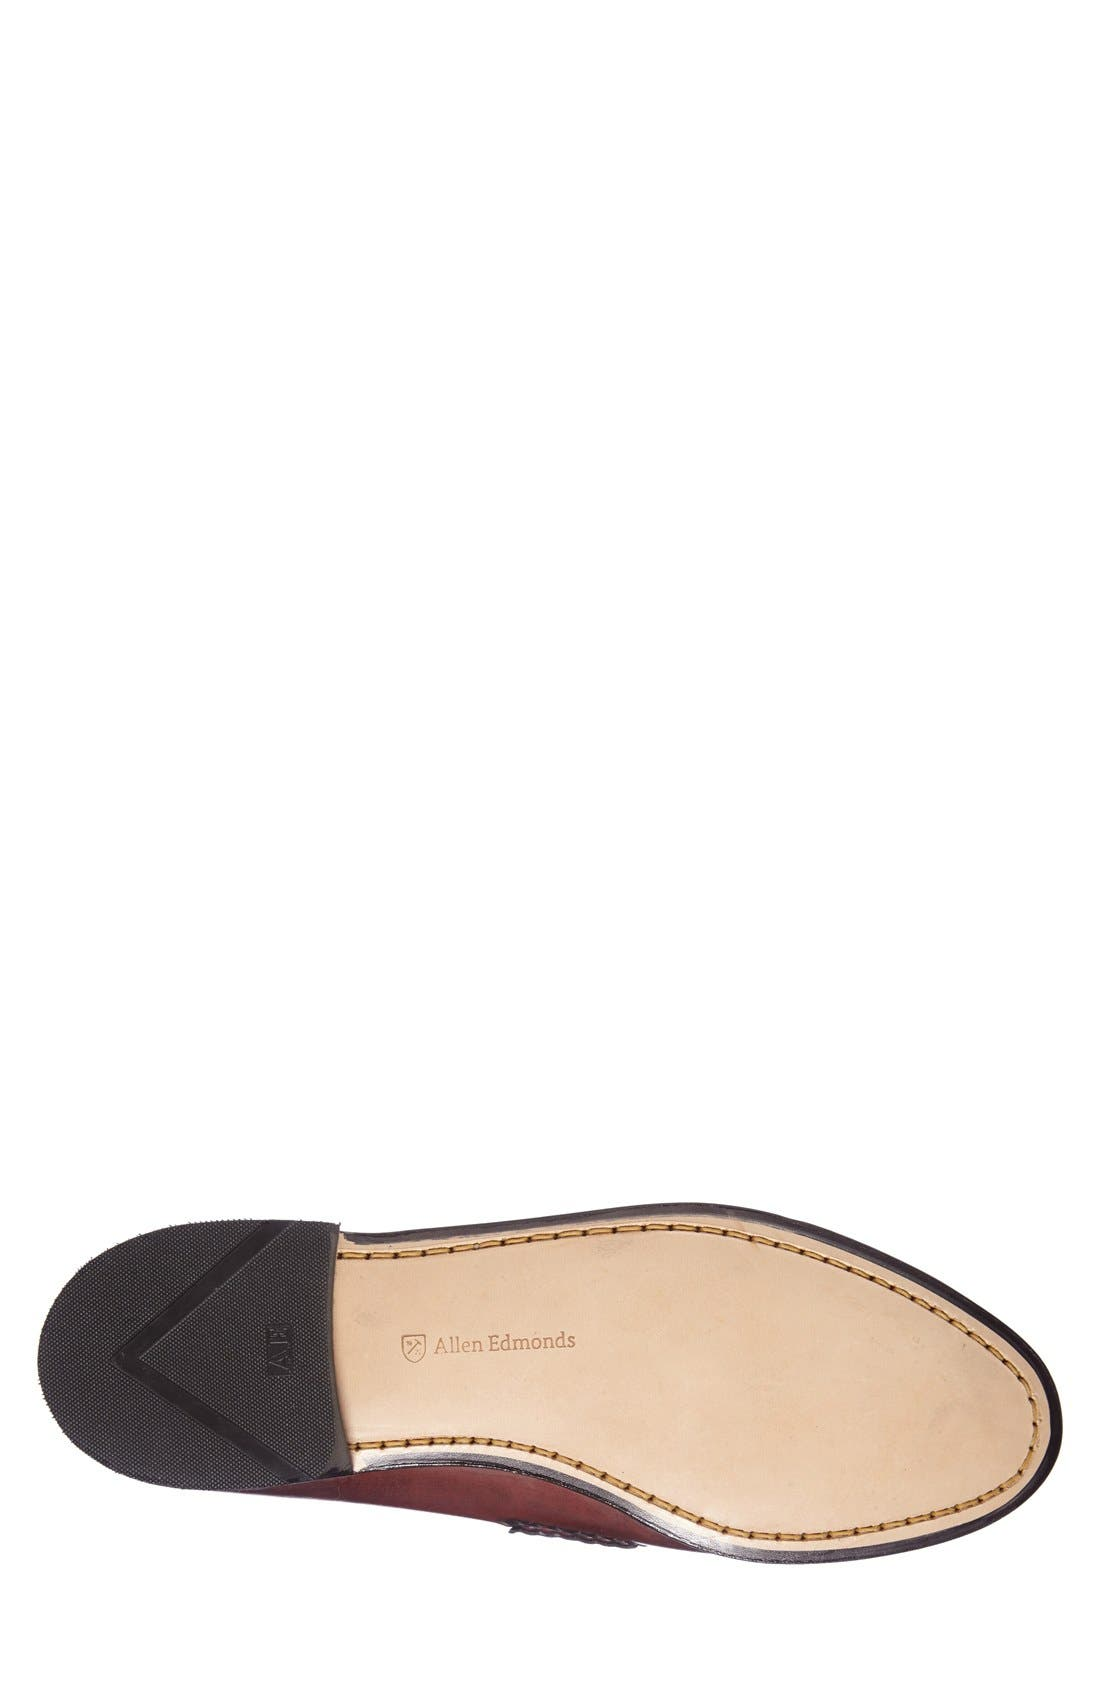 Alternate Image 4  - Allen Edmonds 'Cavanaugh' Penny Loafer (Men)